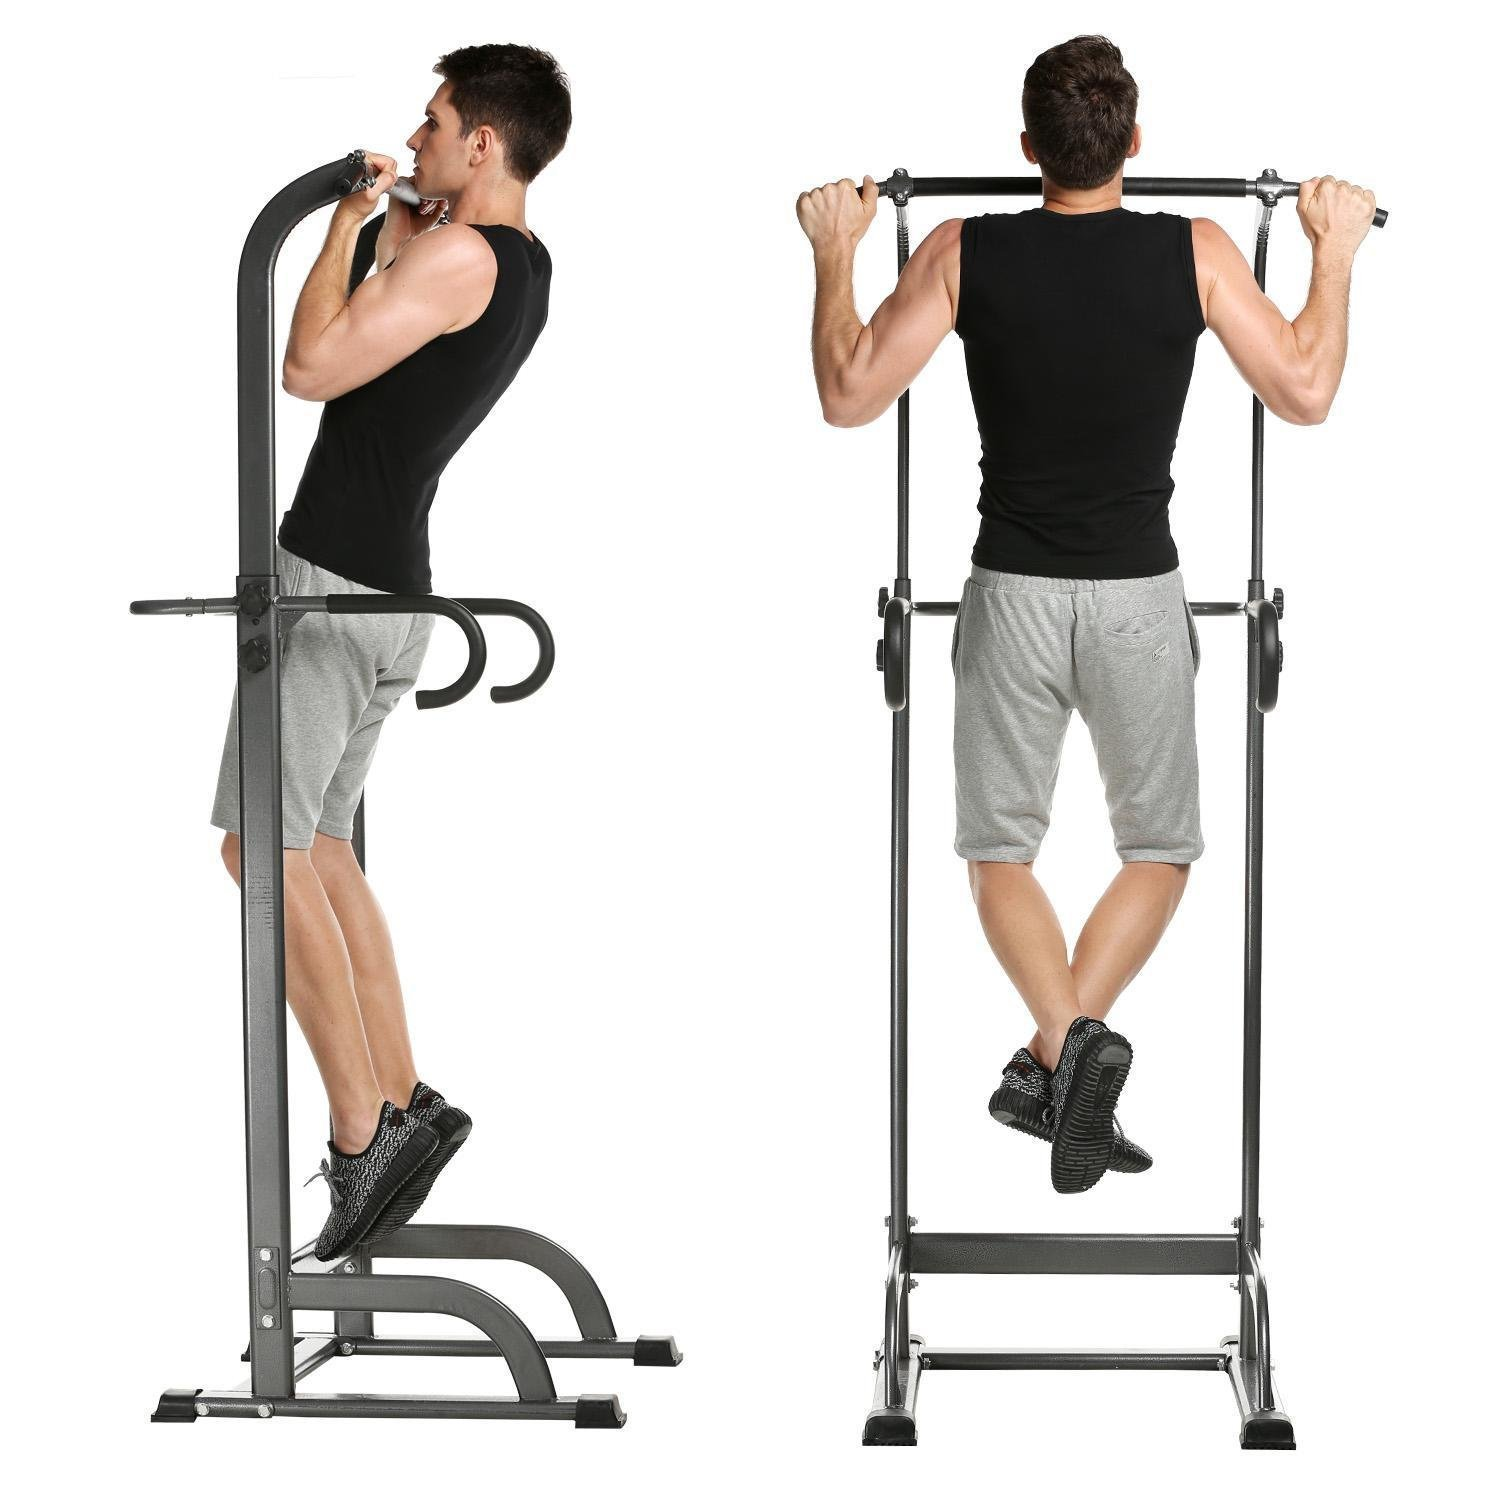 Adjustable Power Tower Exercise Equipment, Pull Up Bar Strength Power Tower Workout Station Fitness Standing Tower for Home Gym by Utheing